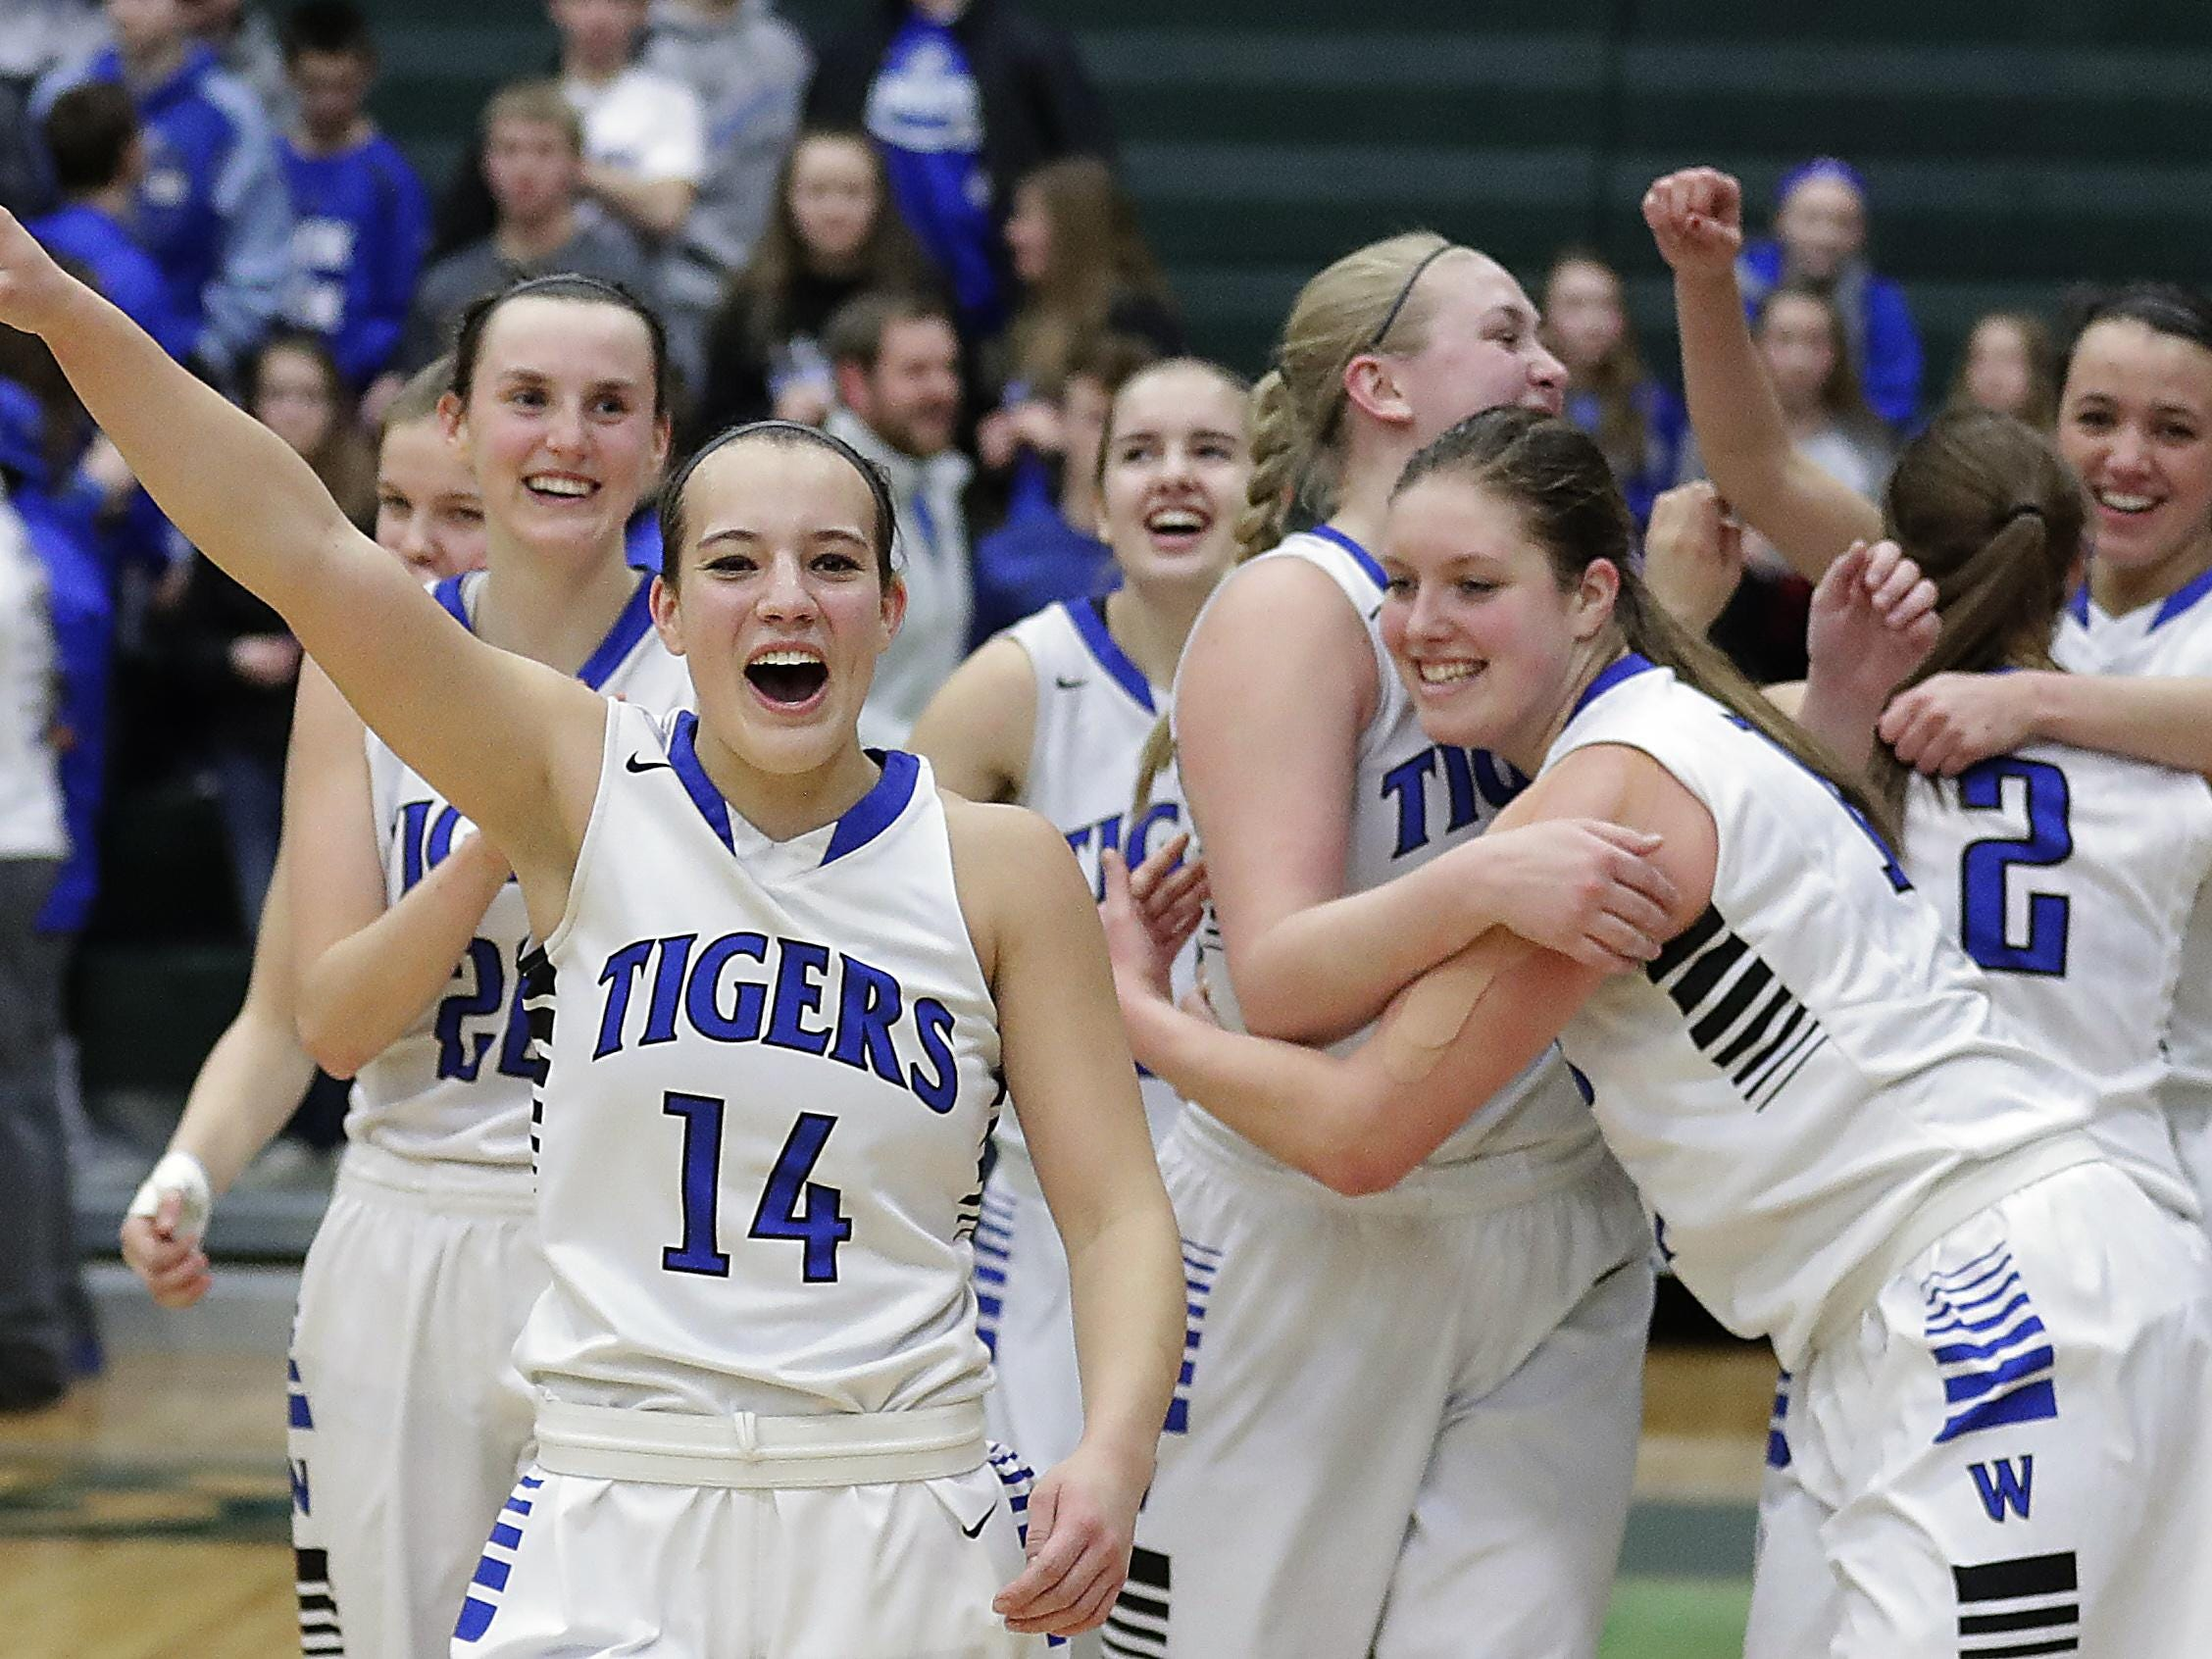 Wrightstown guard Alisha Murphy (14) leads the celebration after the Tigers defeated Amherst to advance to the WIAA Division 3 girls basketball state tournament. See more photos from Saturday's sectional final at greenbaypressgazette.com.